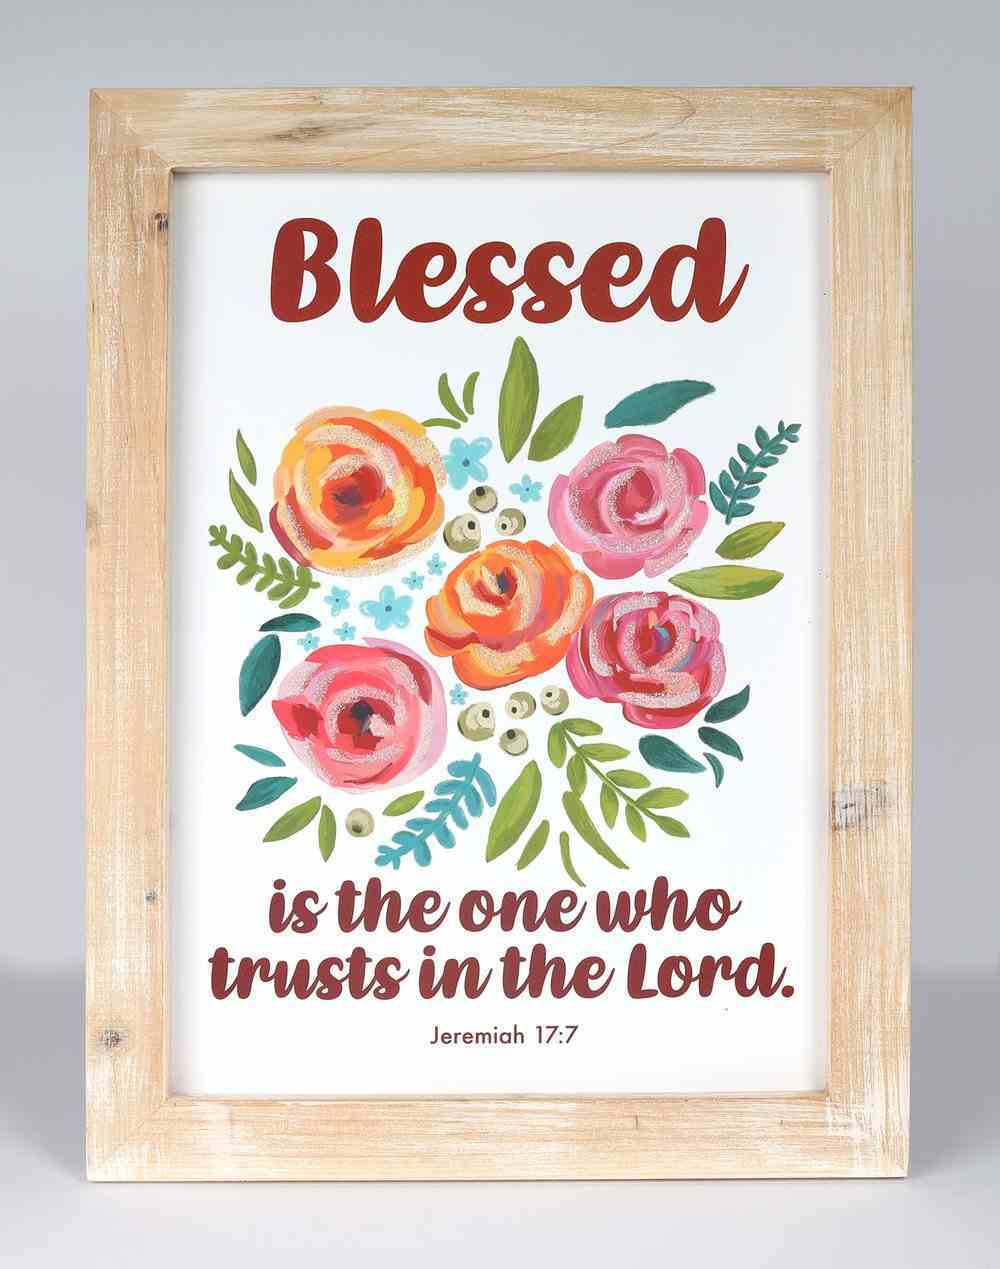 Mdf Wall Art: Blessed is the One Who Trusts in the Lord, Jeremiah 17:7 Plaque